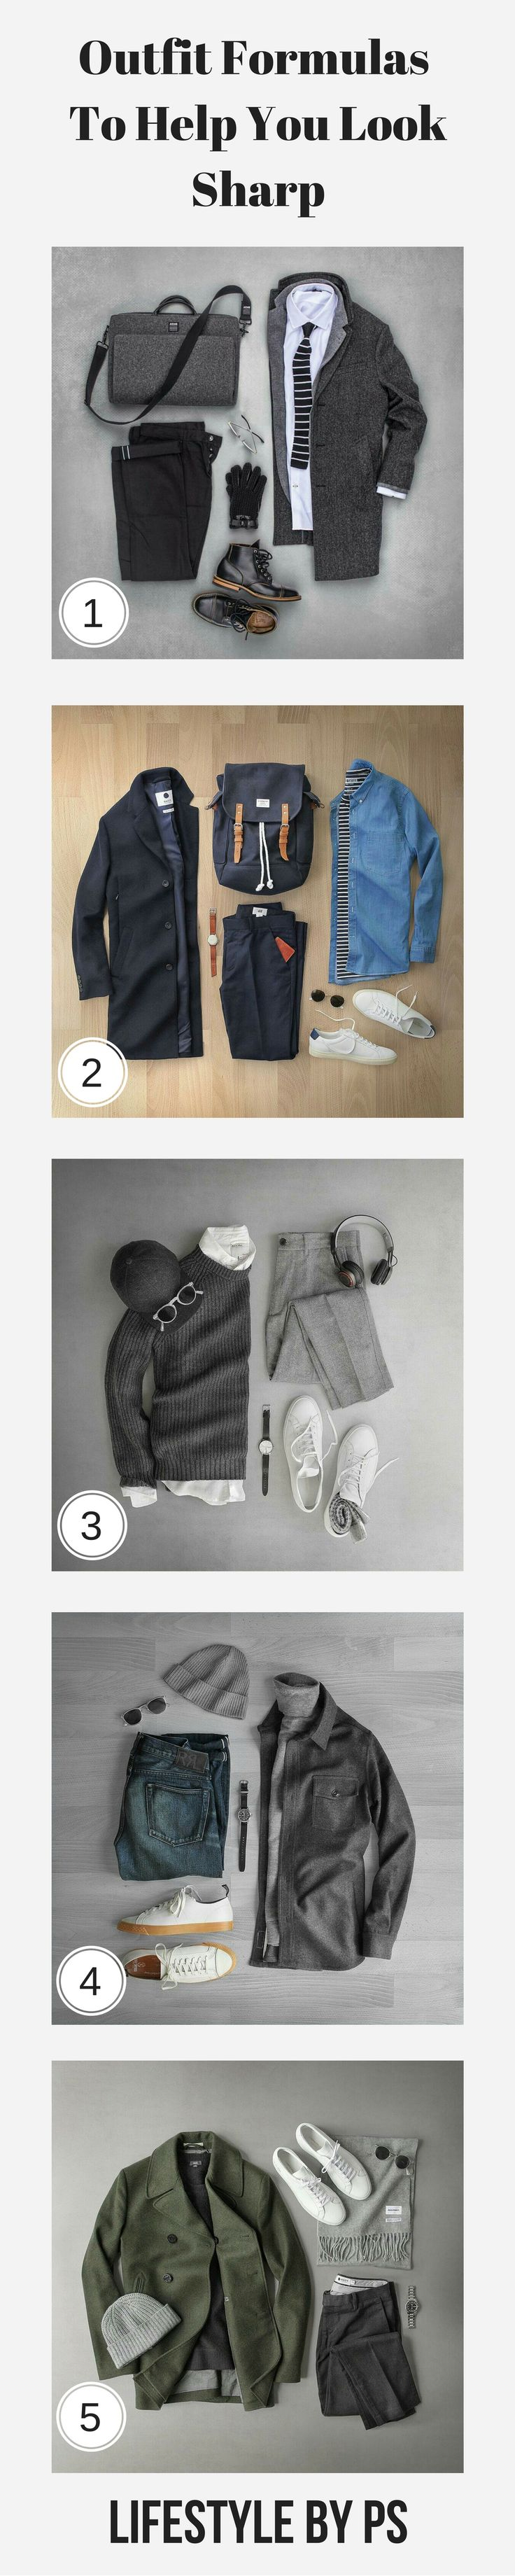 OUTFIT GRIDS FOR MEN.. #mens #fashion #style